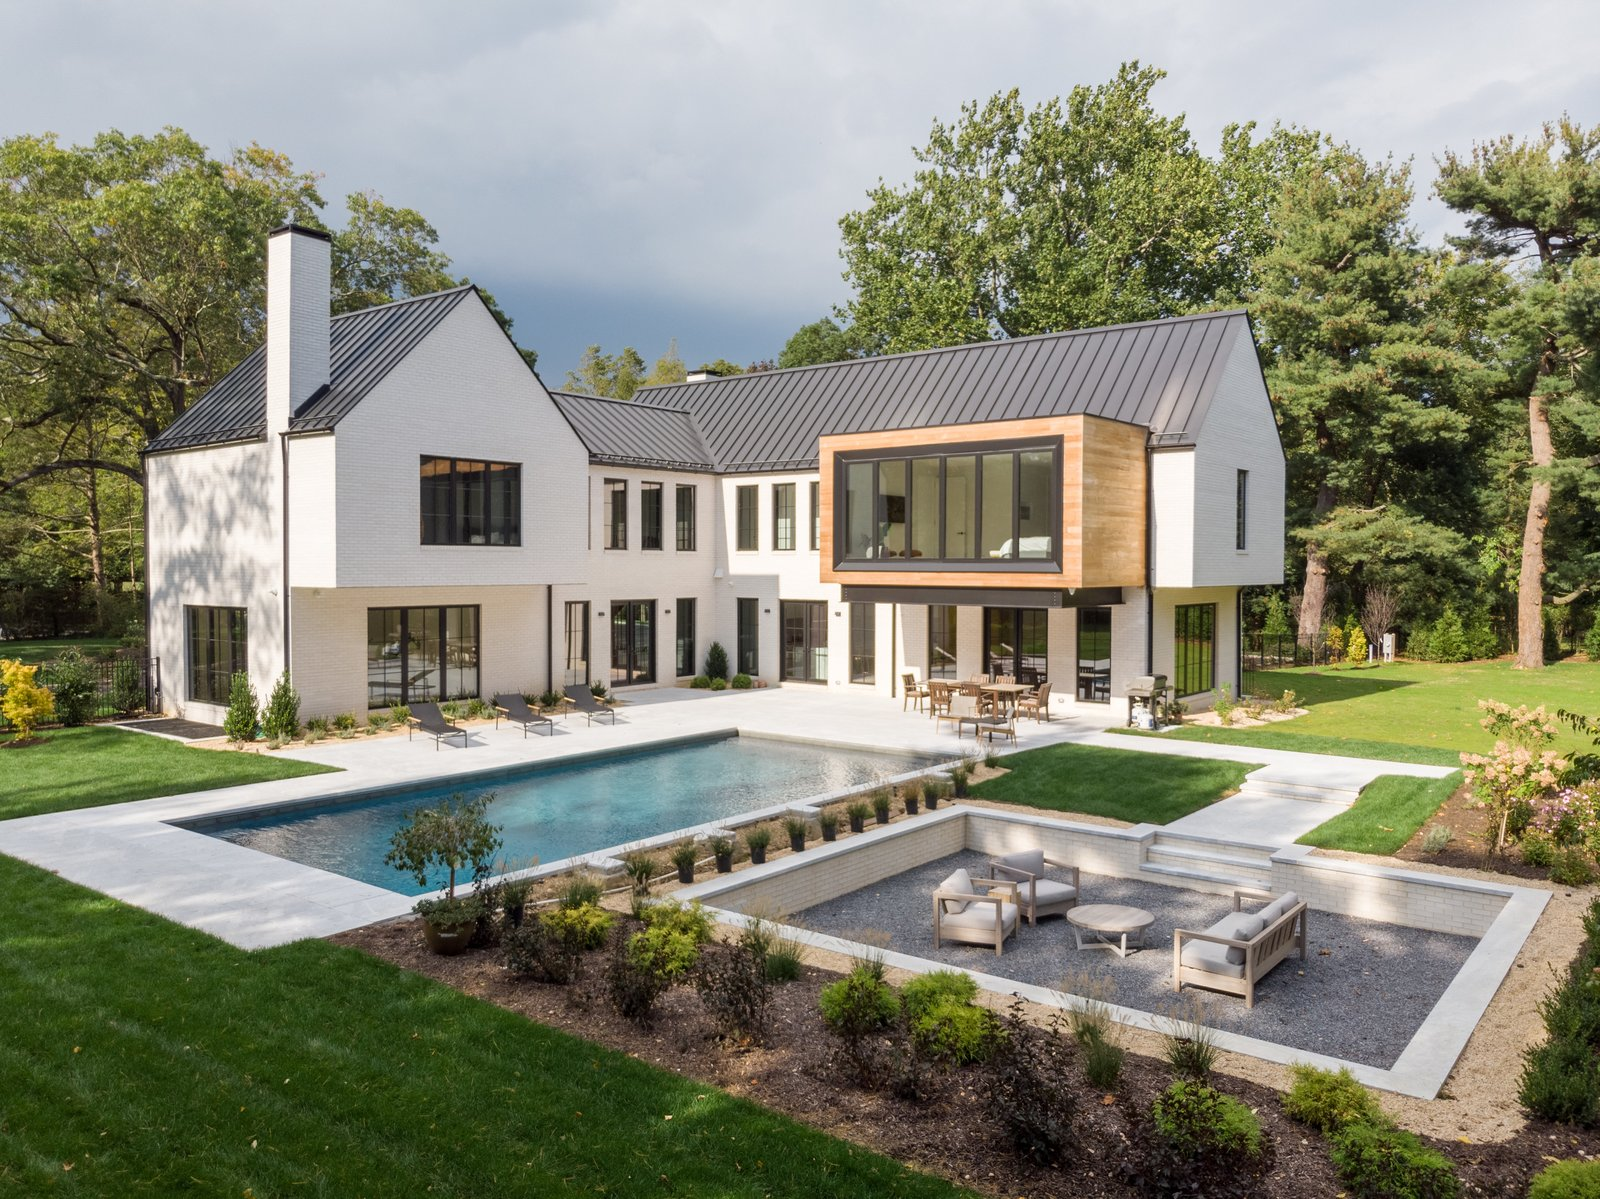 Exterior, Metal Roof Material, Gable RoofLine, and House Building Type A look at the rear of the home, which connects several geometric forms around the open corner concept. The interior seamlessly flows outward to meet a large patio, pool, and sunken entertainment area.  Photo 11 of 11 in This Home's Unique Shape Is Designed to Capture Sunlight